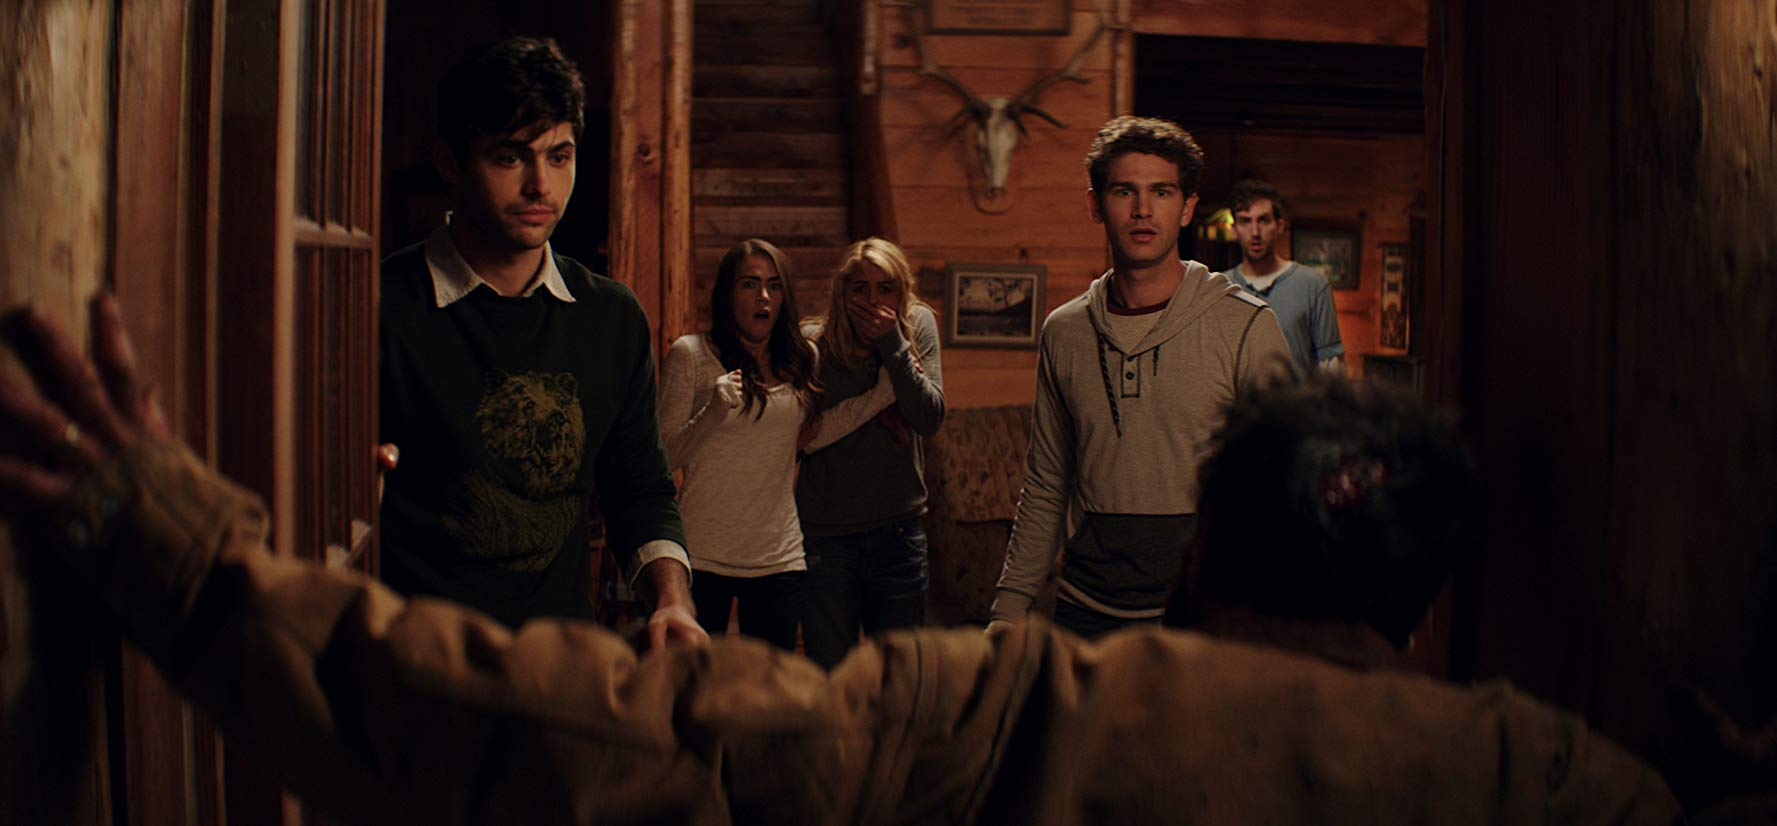 Matthew Daddario, Nadine Crocker, Gage Golightly, Samuel Davis and Dustin Ingram in Cabin Fever (2016)